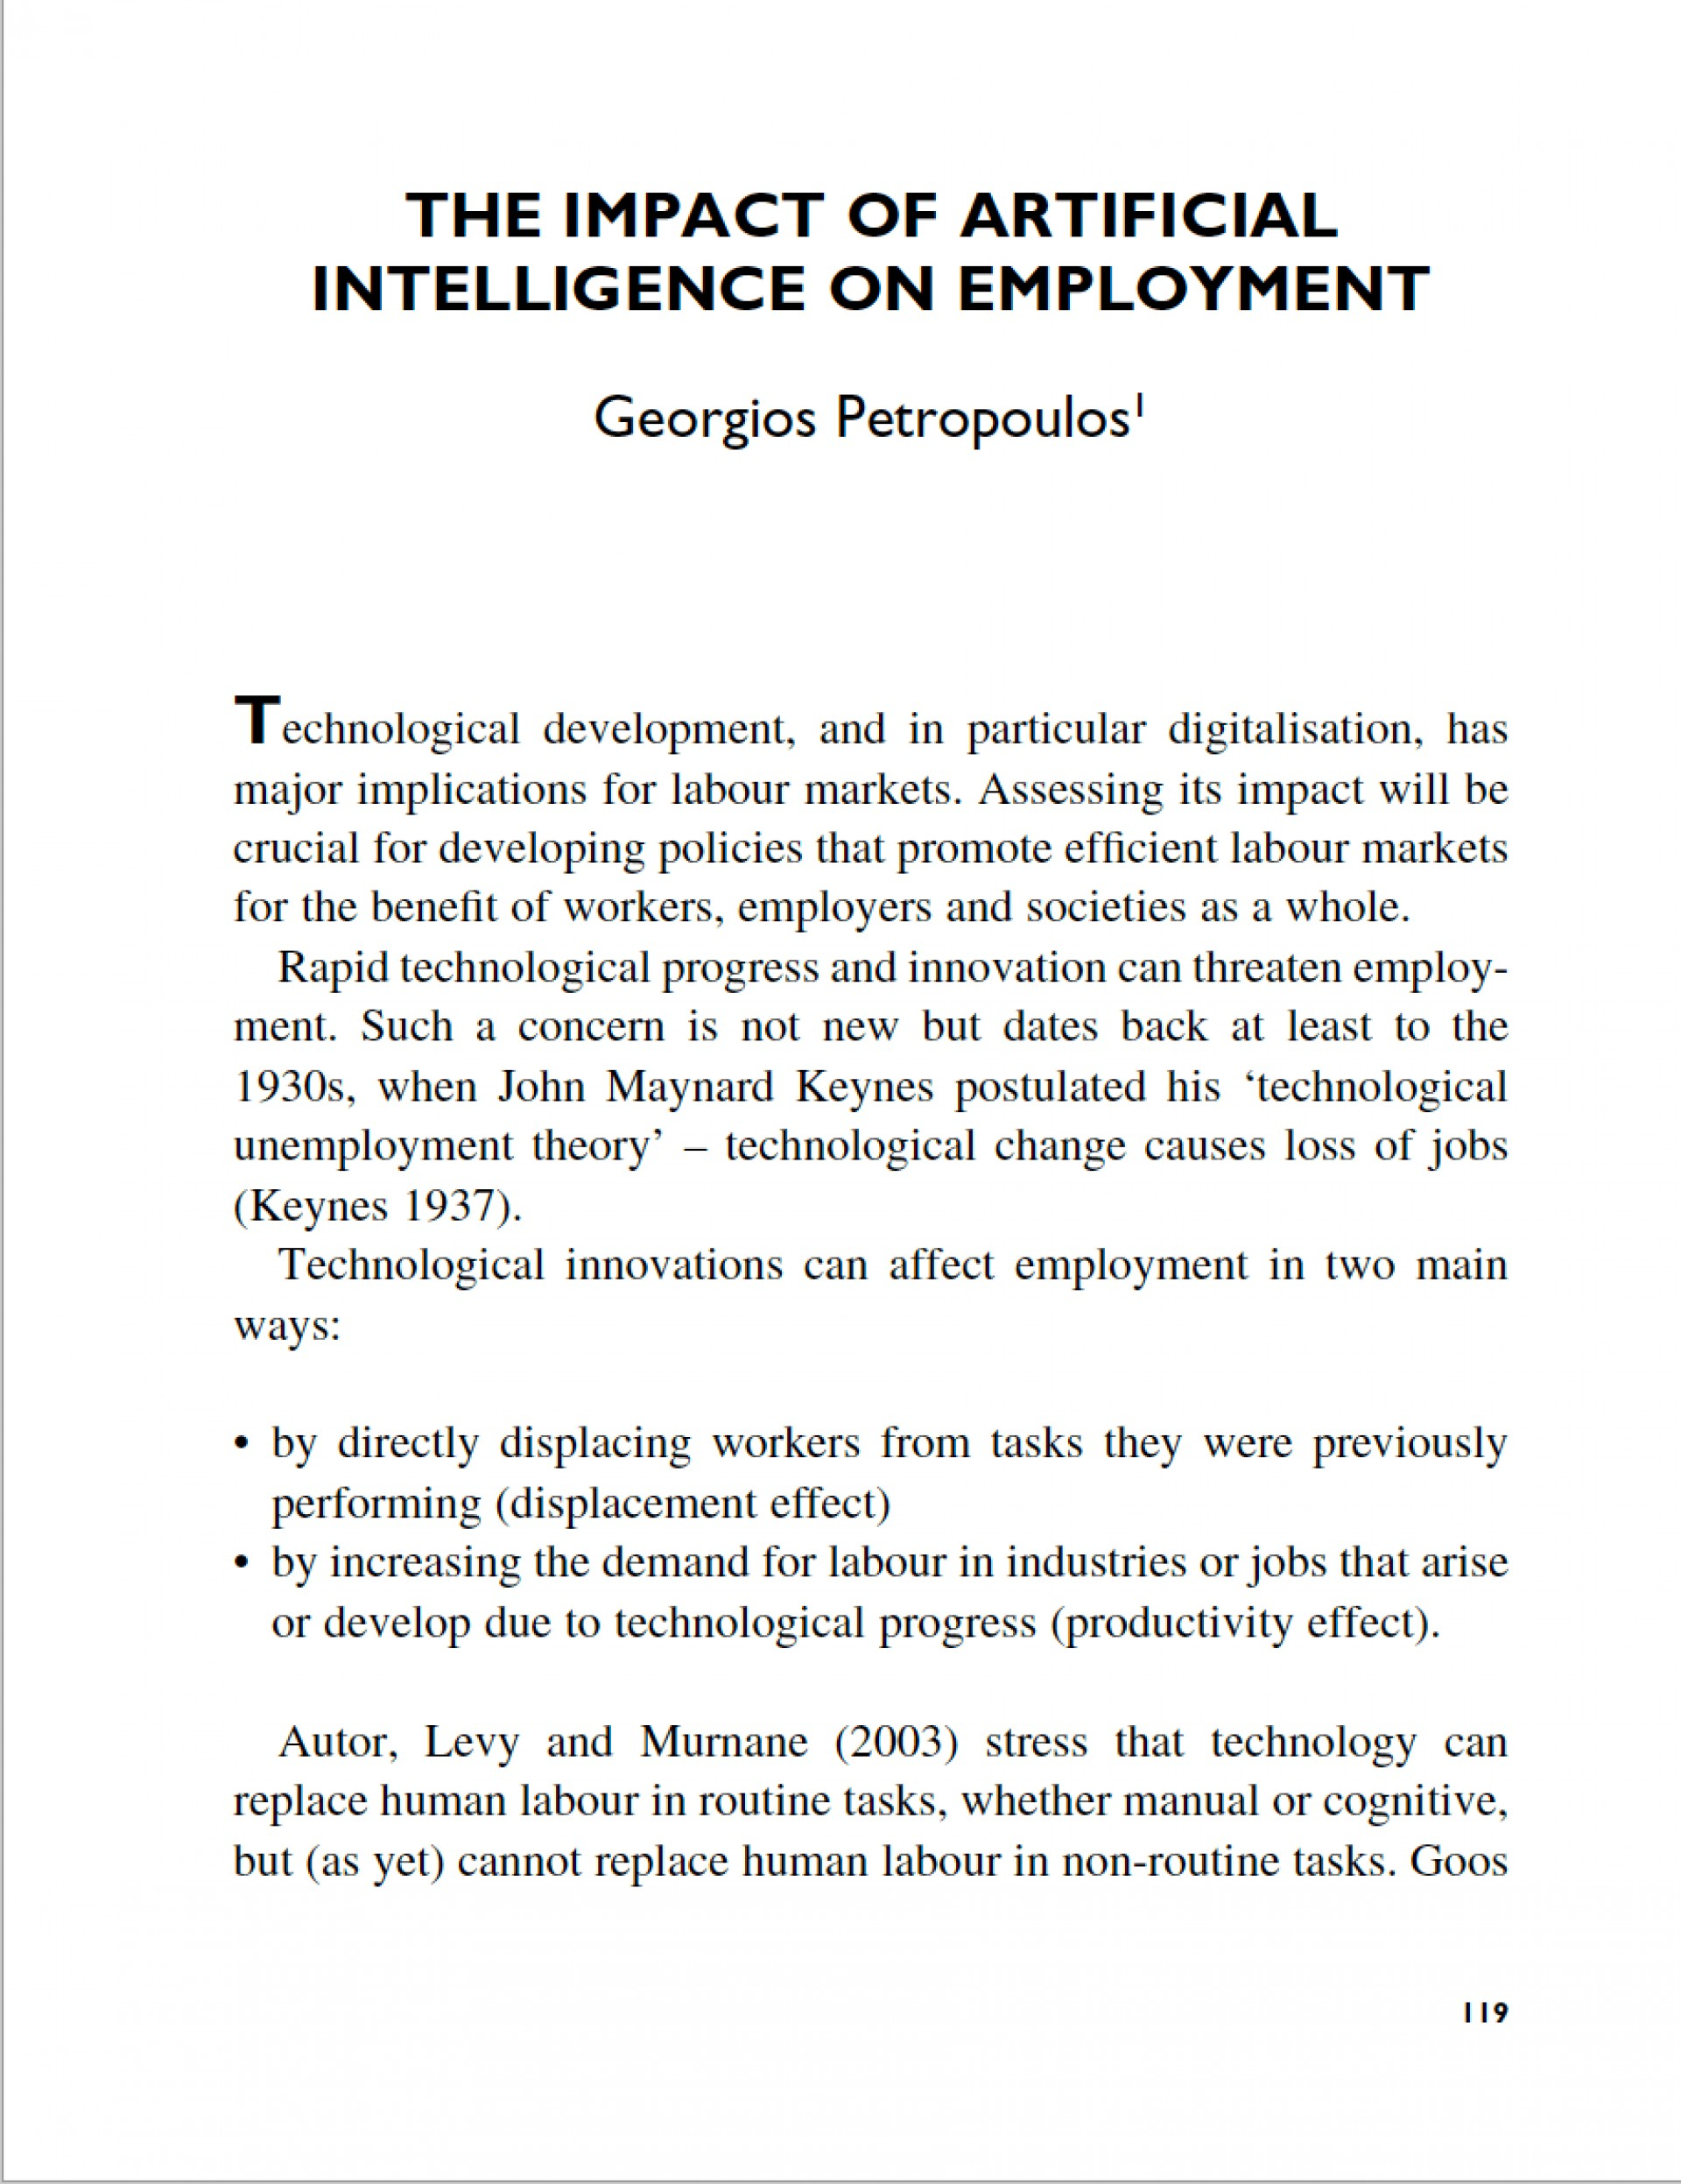 005 Screen Shot At Artificial Intelligence Research Sensational Paper 2018 Topics Pdf 1920